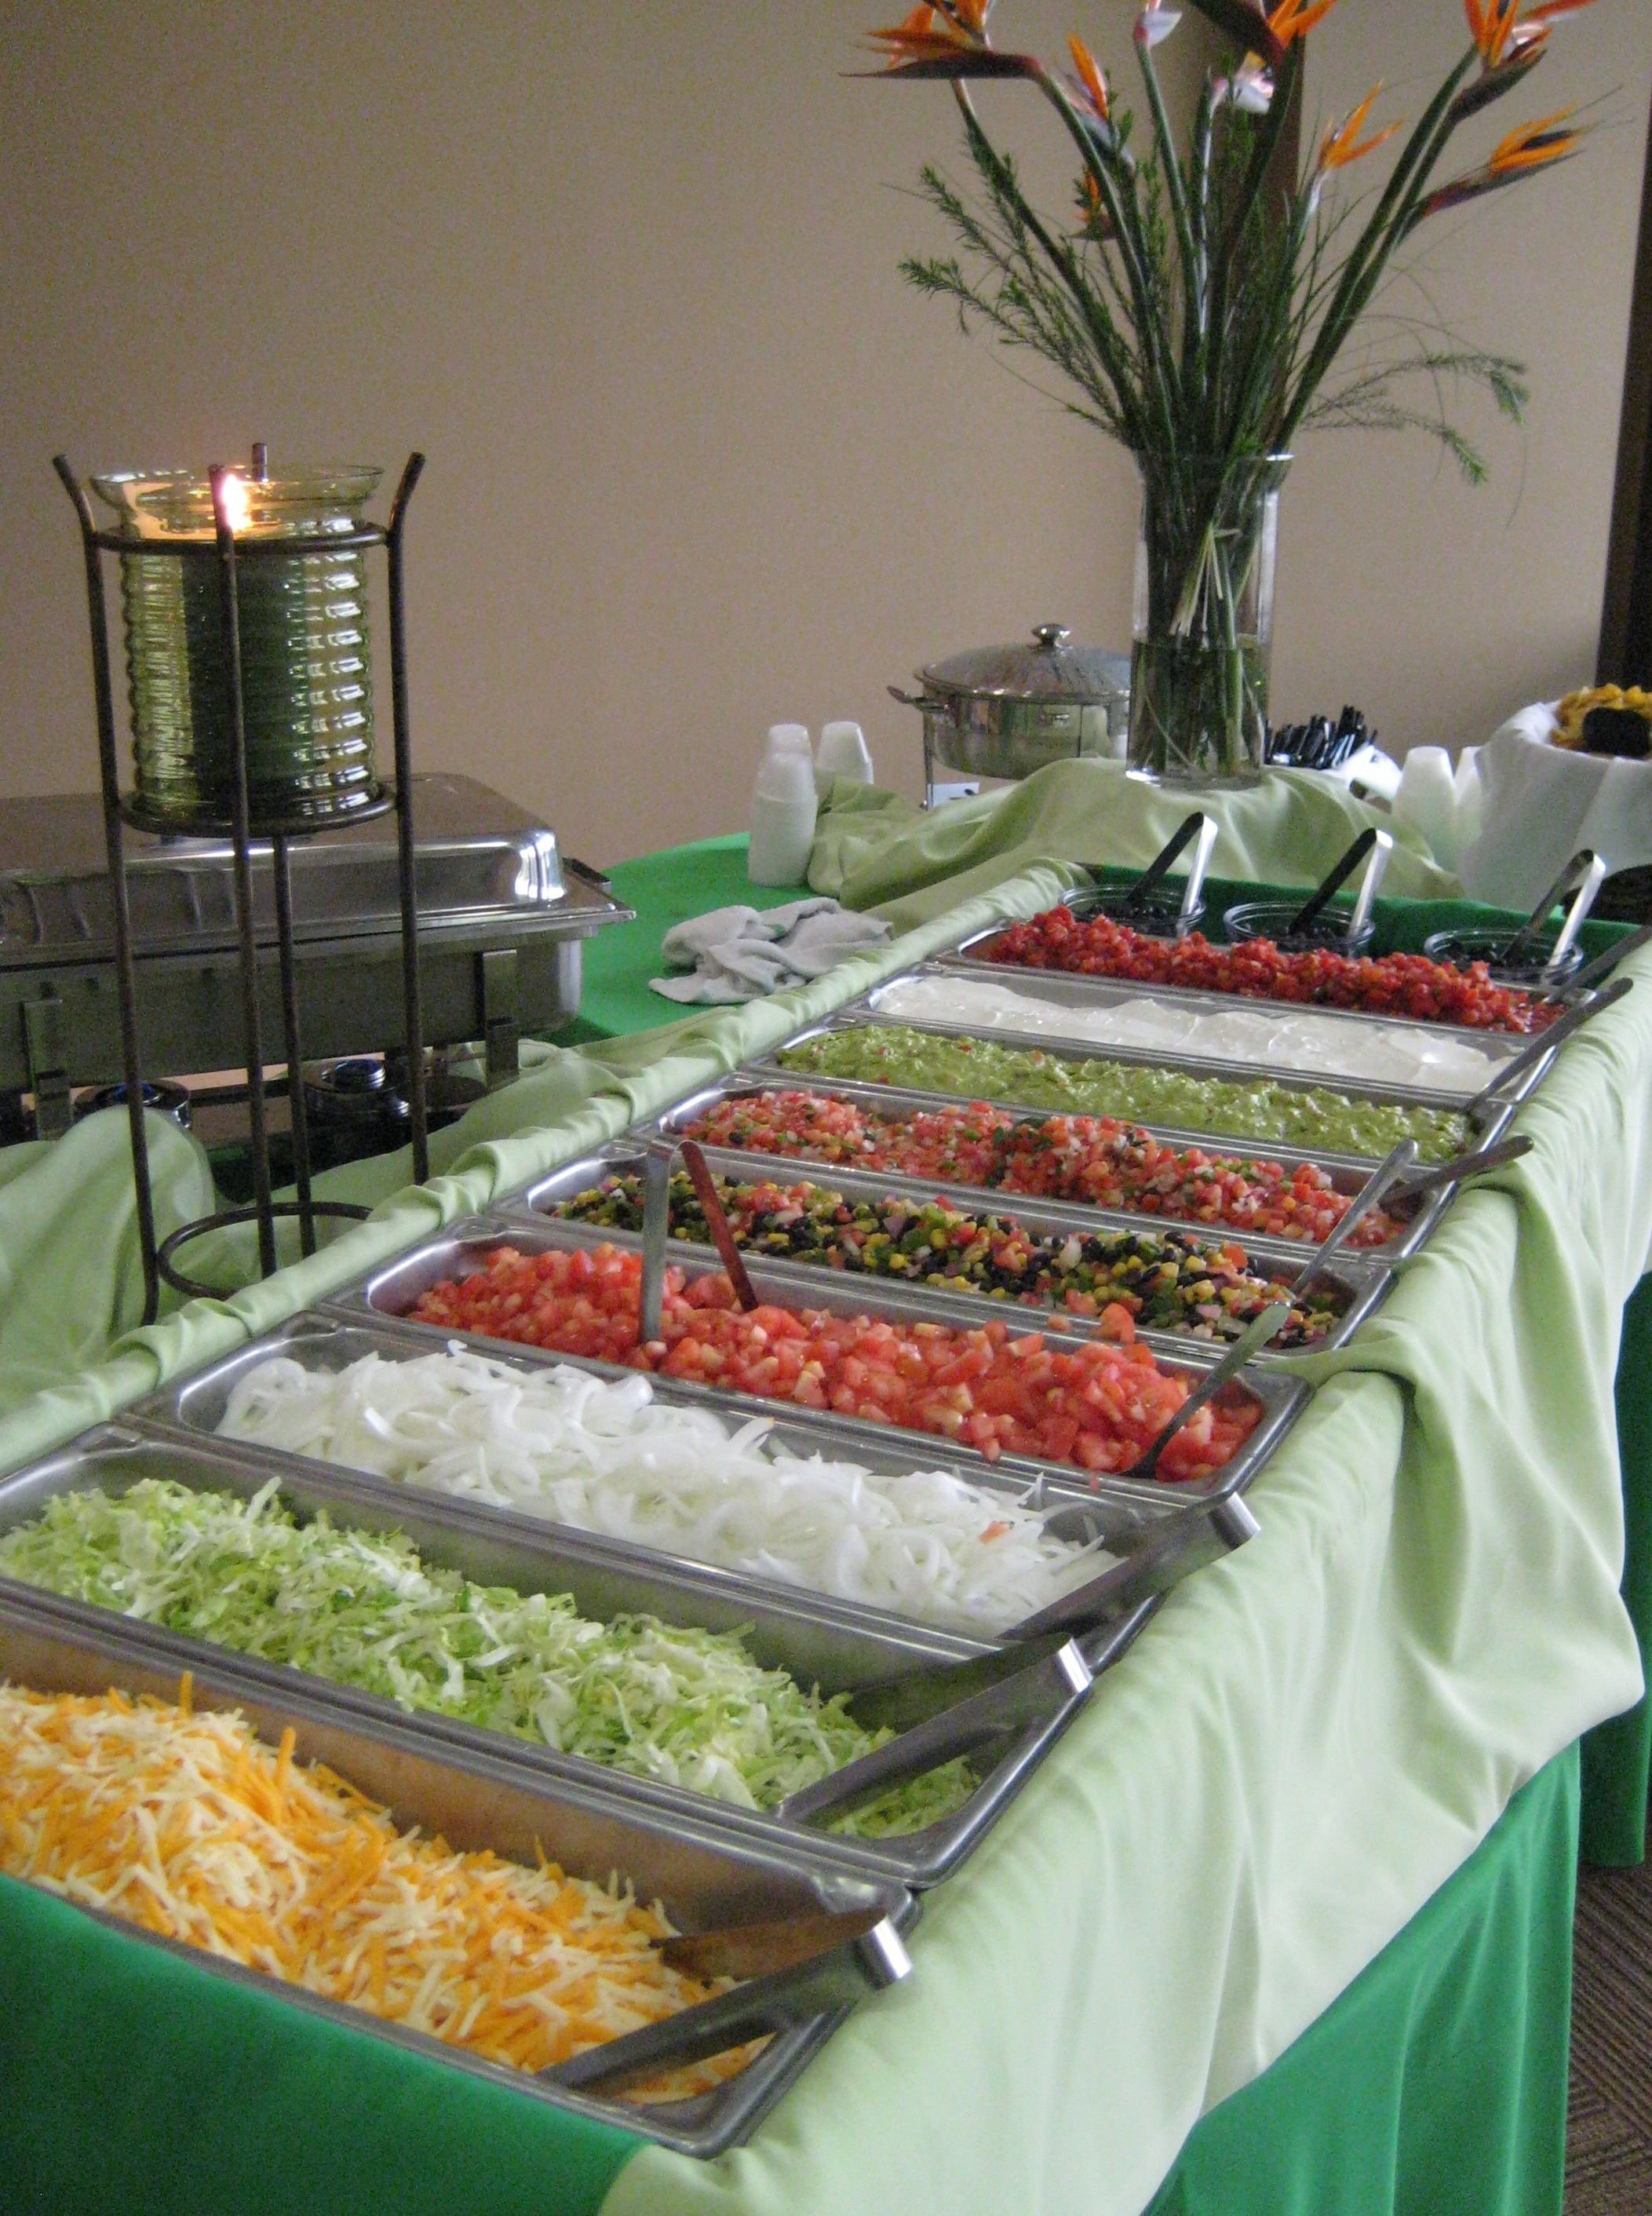 10 Awesome Graduation Open House Food Ideas neat ideataco bar for the reception easy affordable yummy 2020